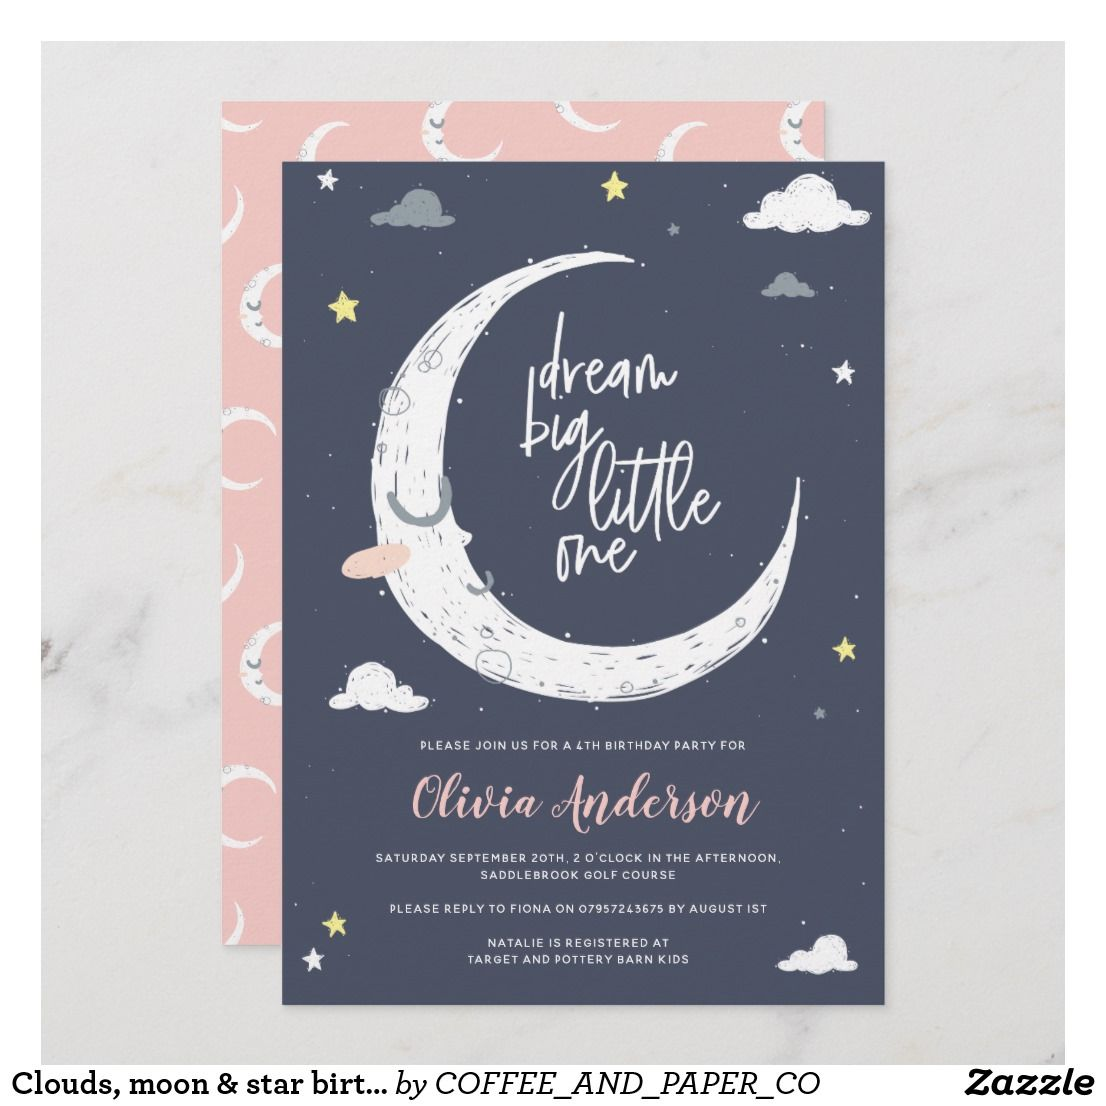 Clouds Moon Star Birthday Party Invitation Zazzle Com Star Birthday Party Birthday Party Invitations Printable Birthday Invitations